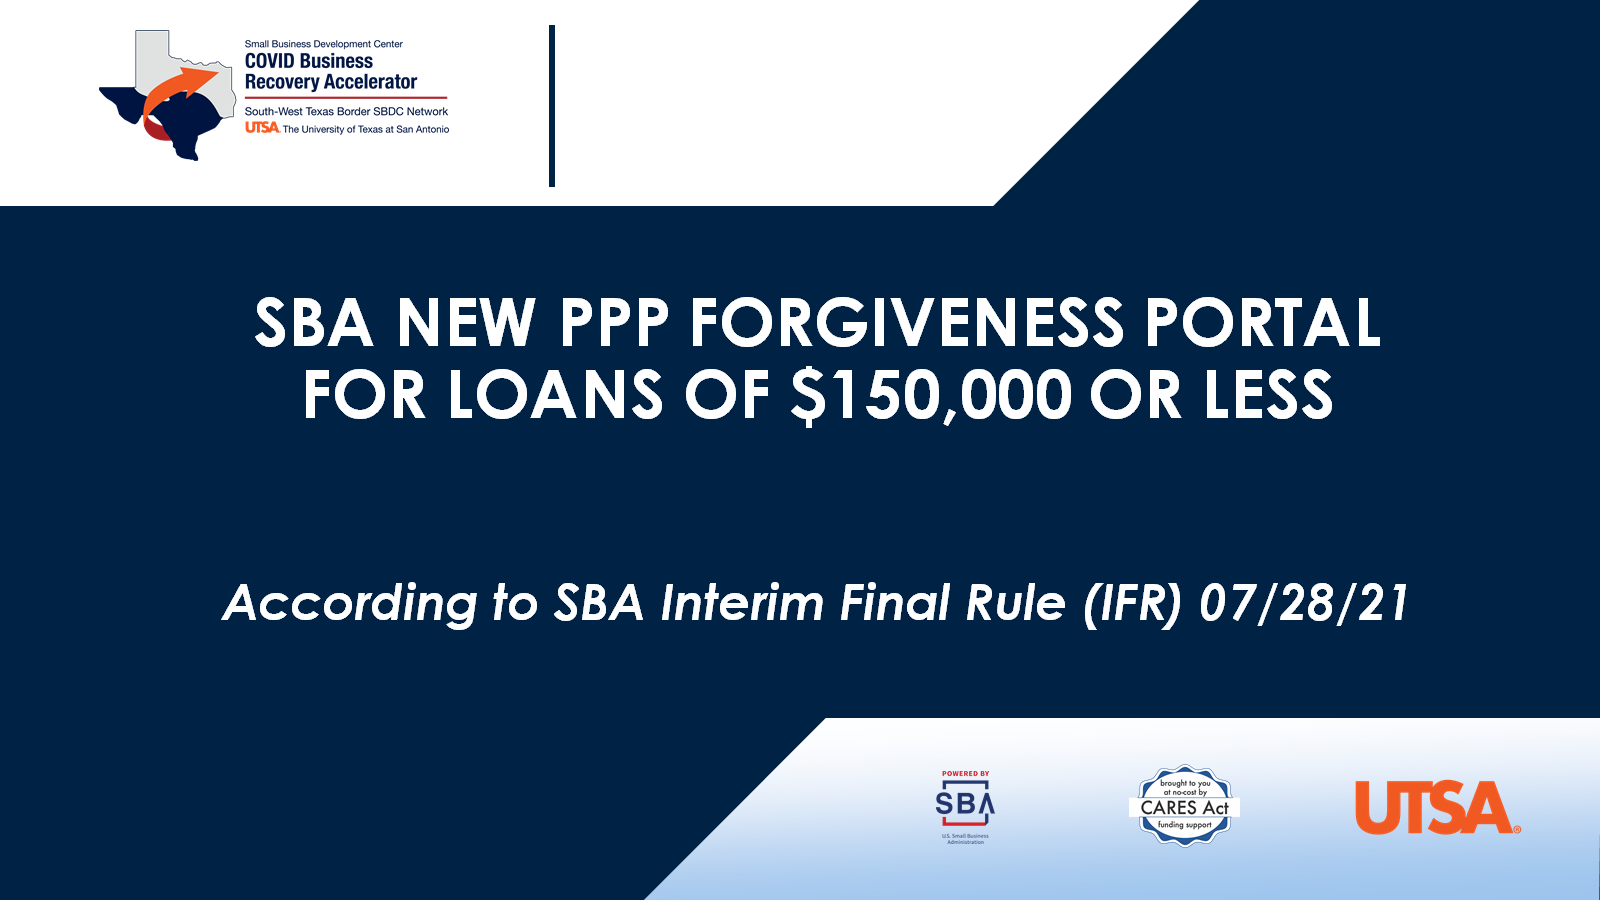 SBA New PPP Forgiveness Portal for Loans of $150,000 or Less